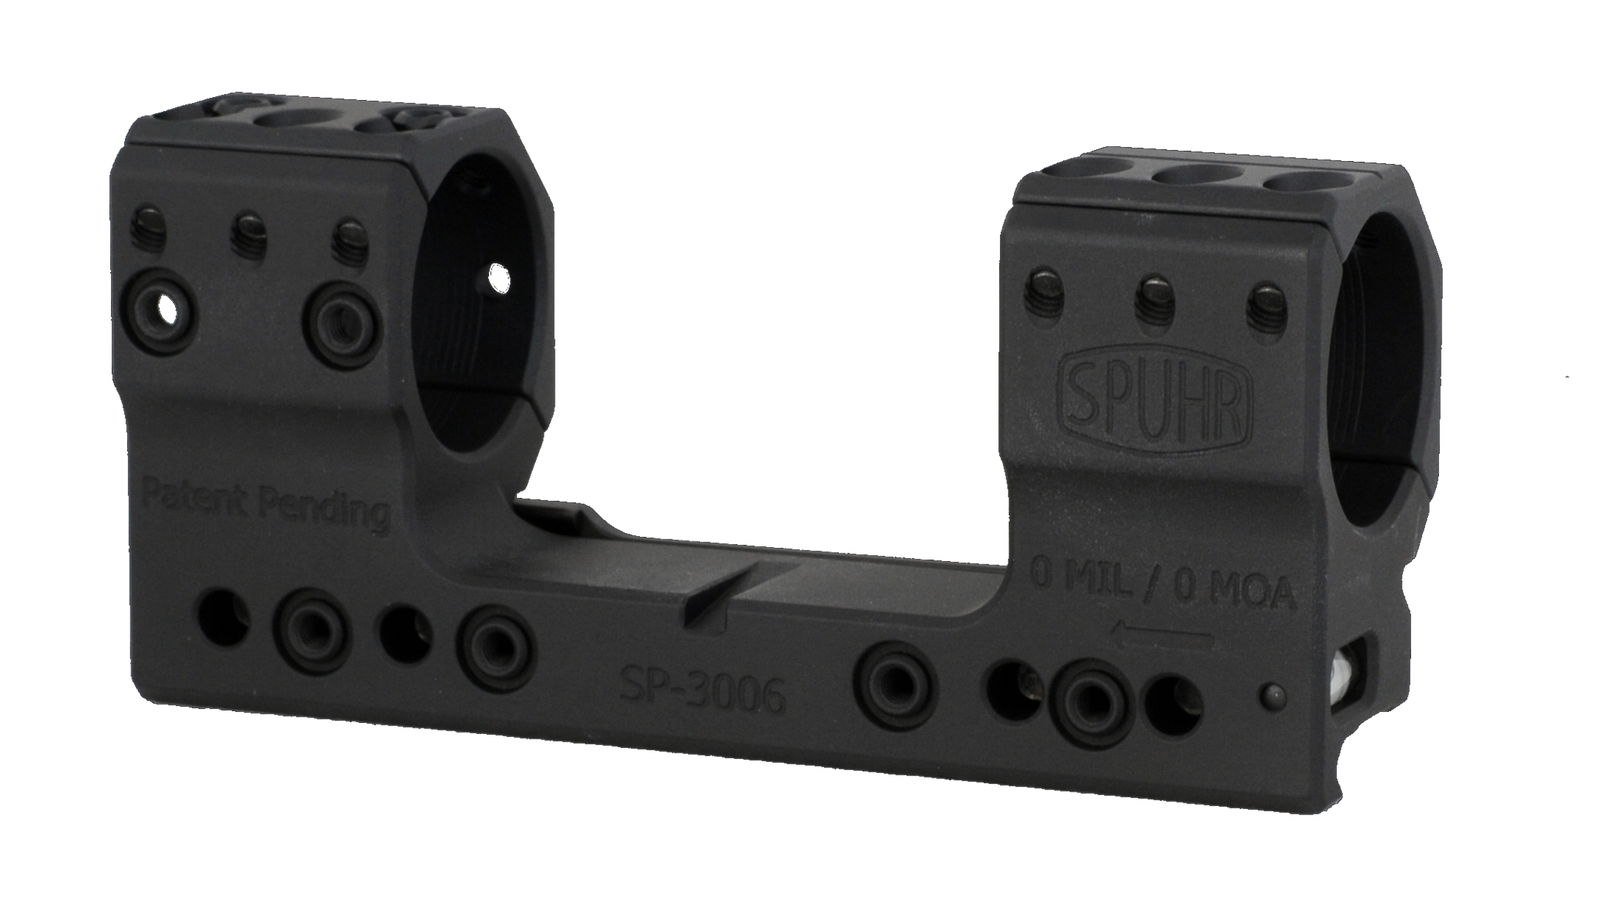 Spuhr Ideal Scope Mount System (ISMS)